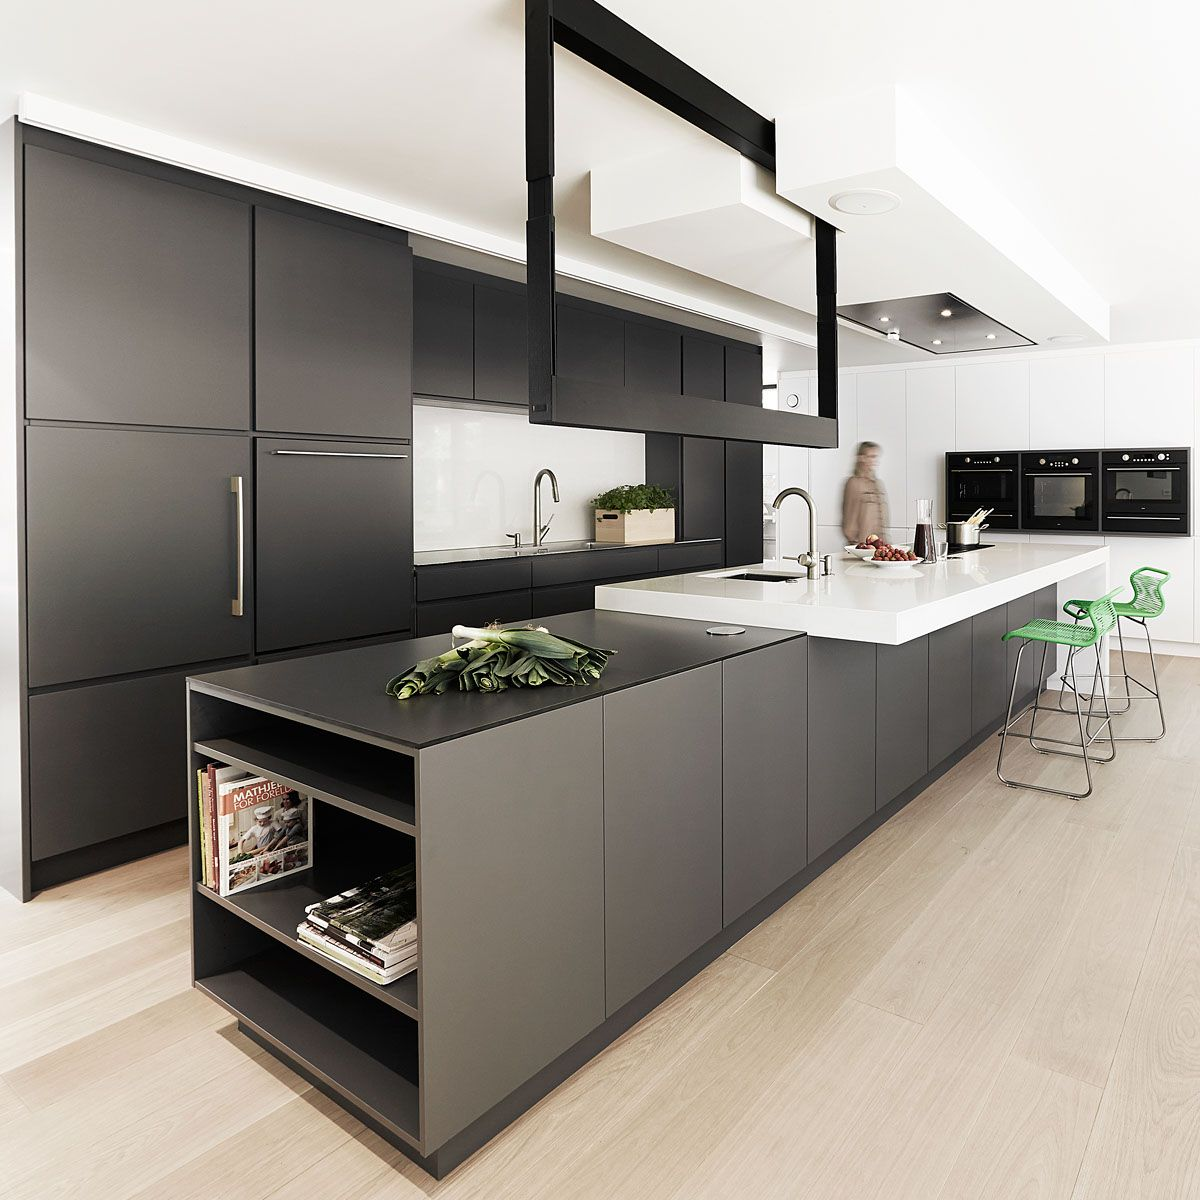 Kitchen Design Centre Prices: Boform Kitchen - Google Search